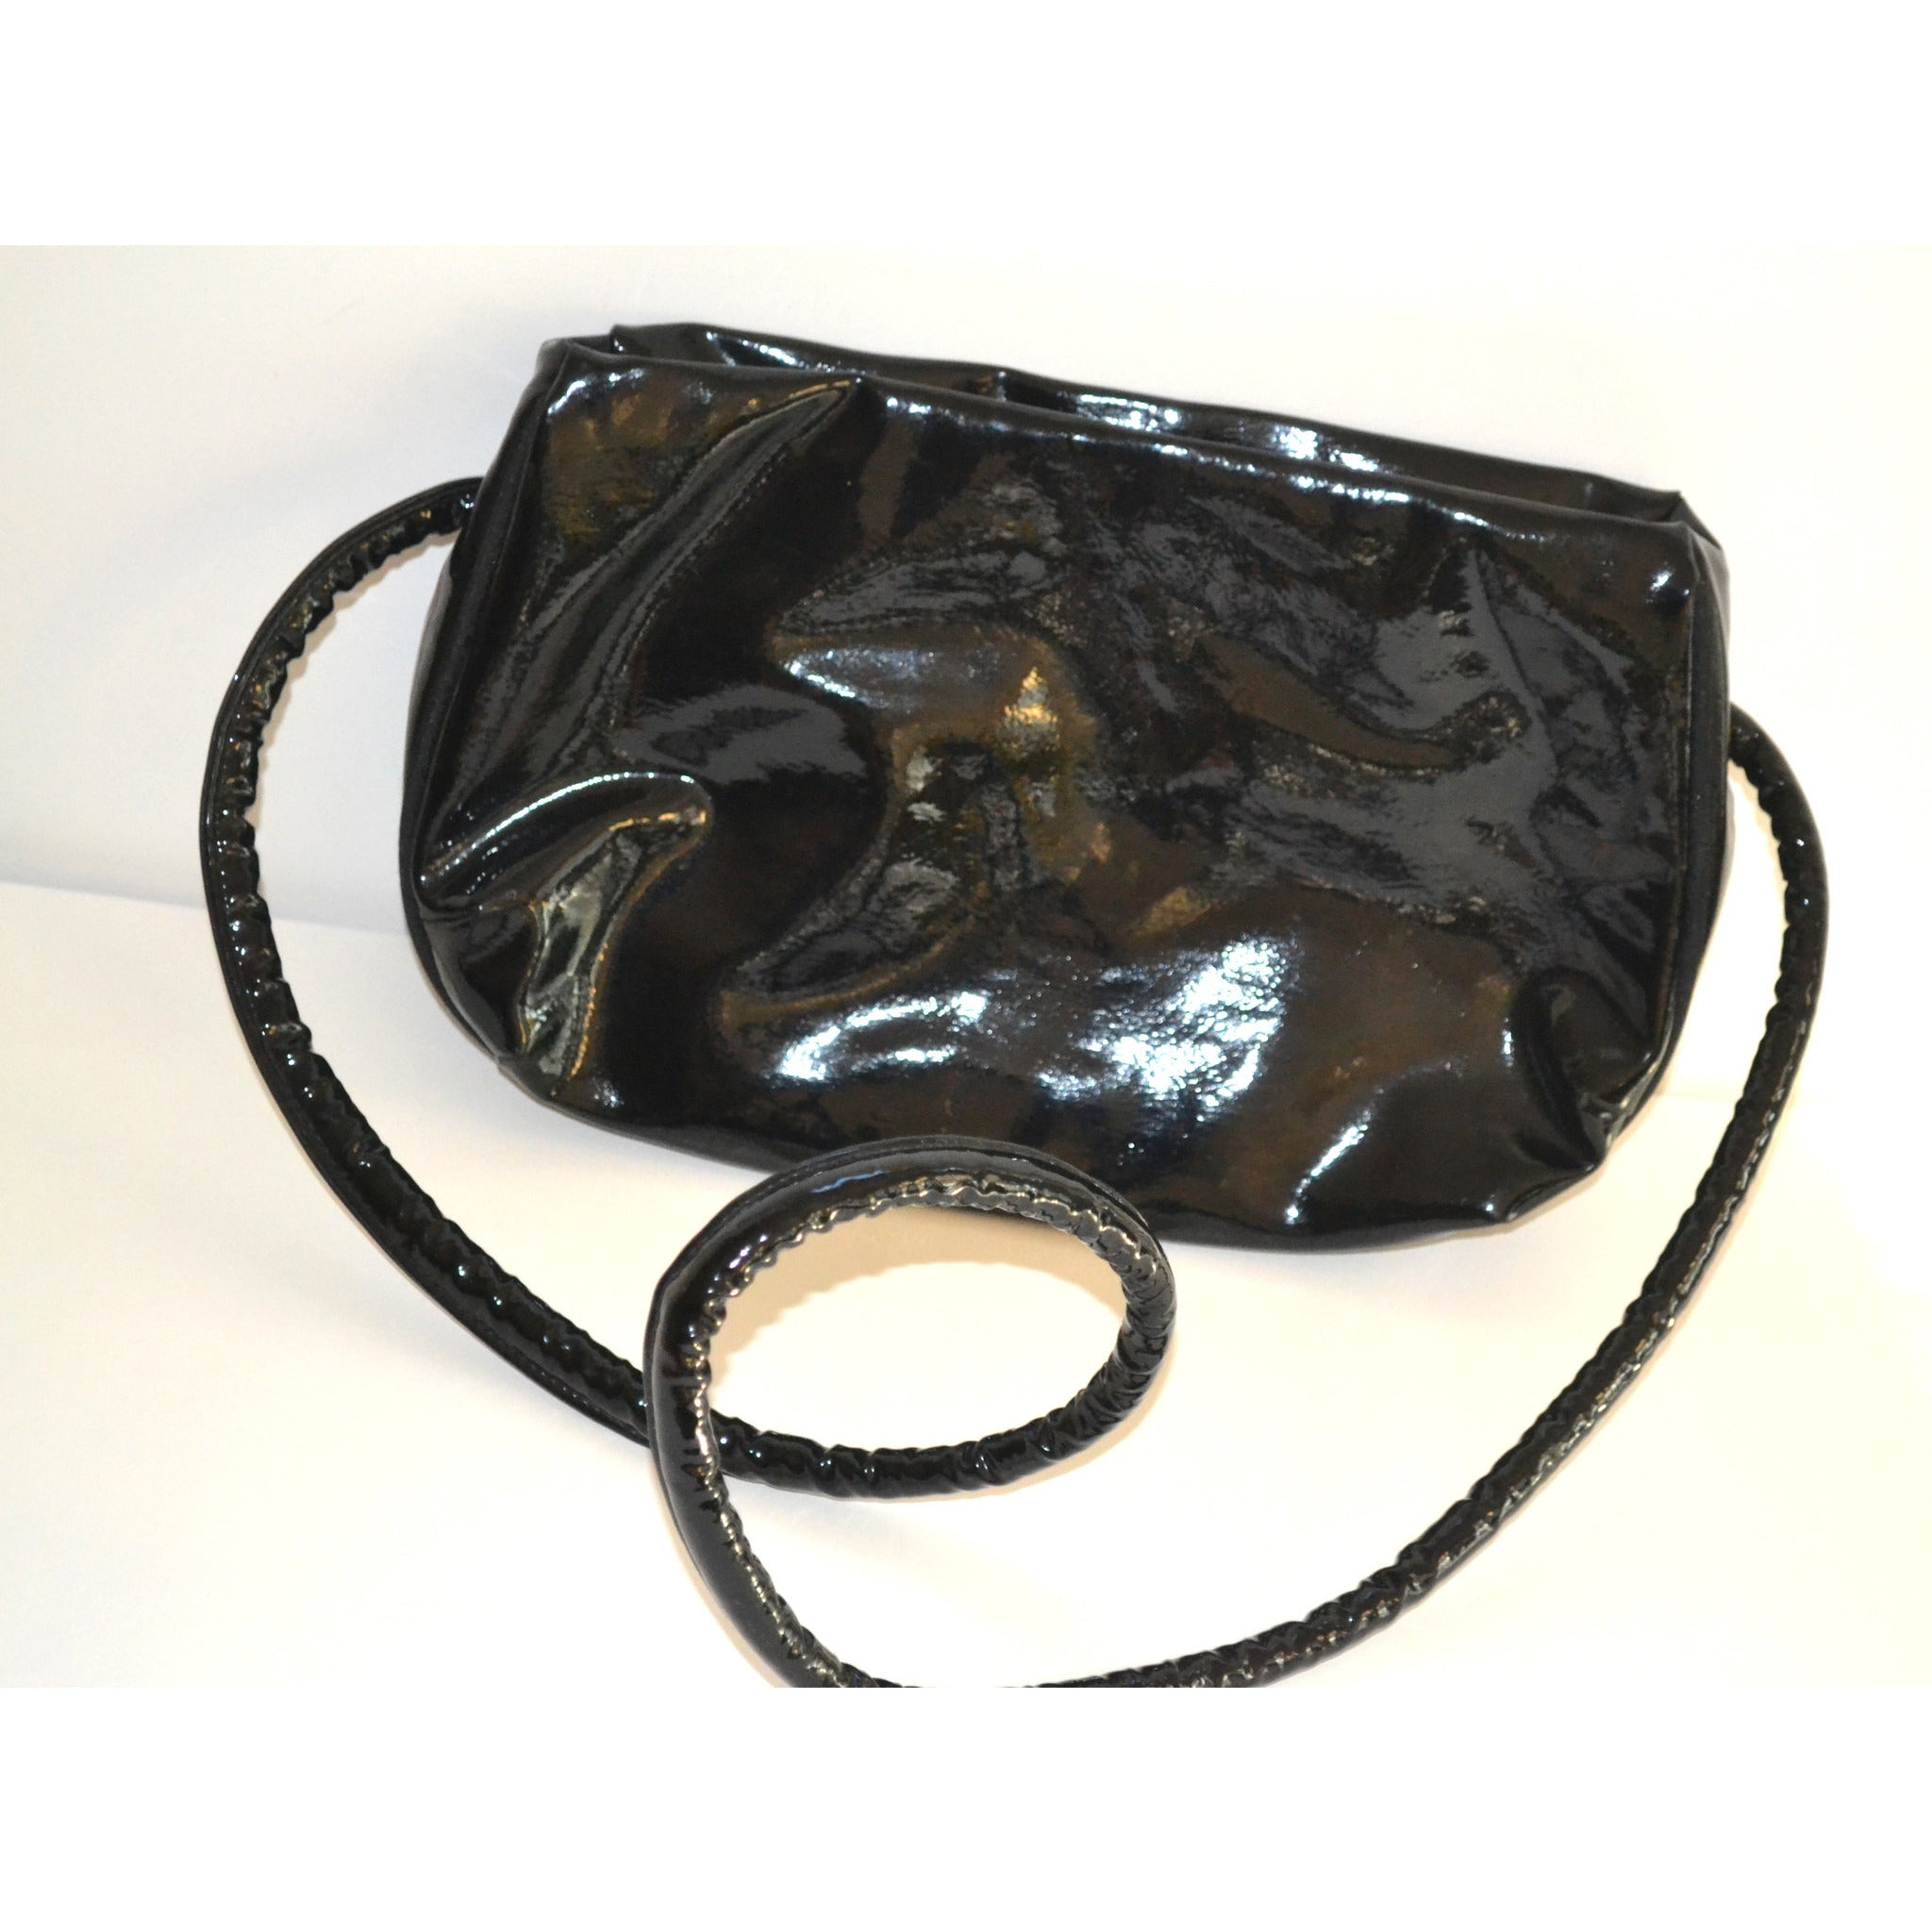 Vintage Patent Leather Licorice Handle Purse By Empress